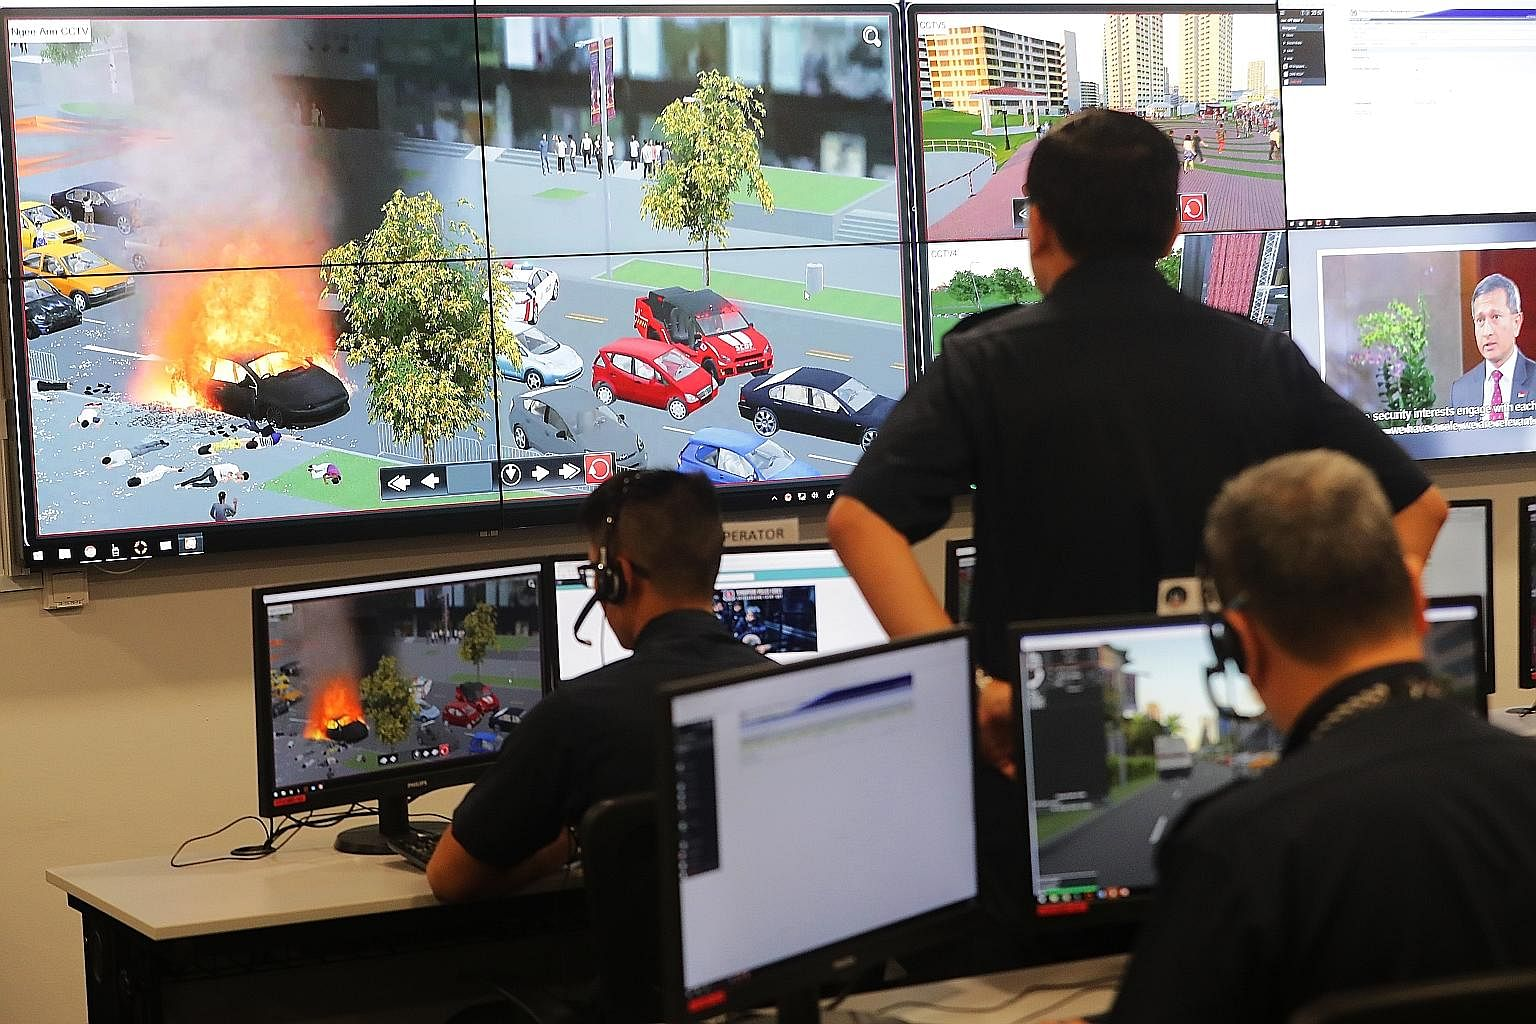 Simulation of a car explosion being monitored in the command post at the Home Team Simulation Centre. The simulation system allows up to 20 commanders from different departments to be trained in joint operations. A simulation exercise can take up to